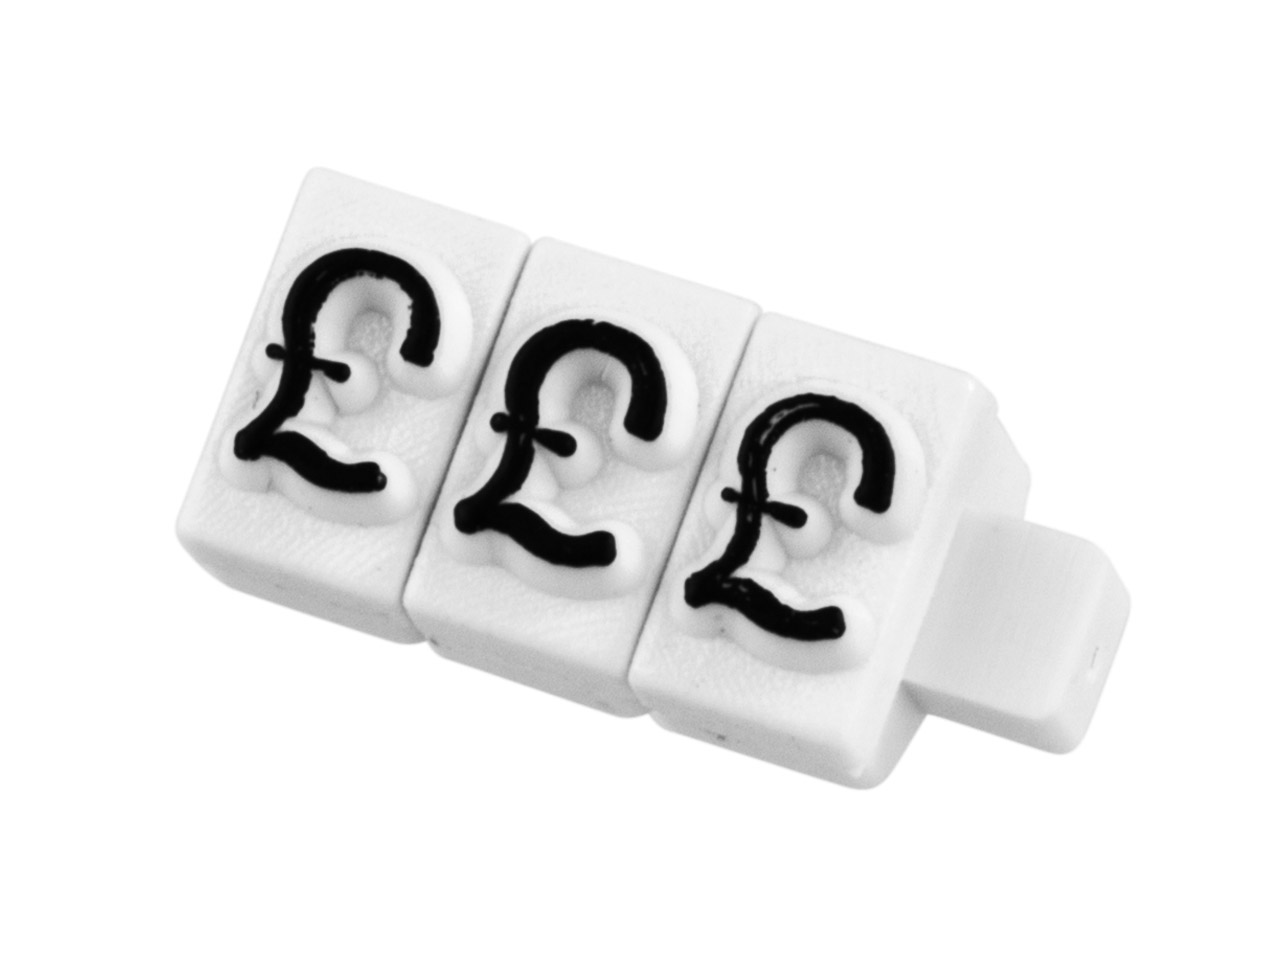 Pricing Block Cube Pack of 100, £  Set White And Black Small Font